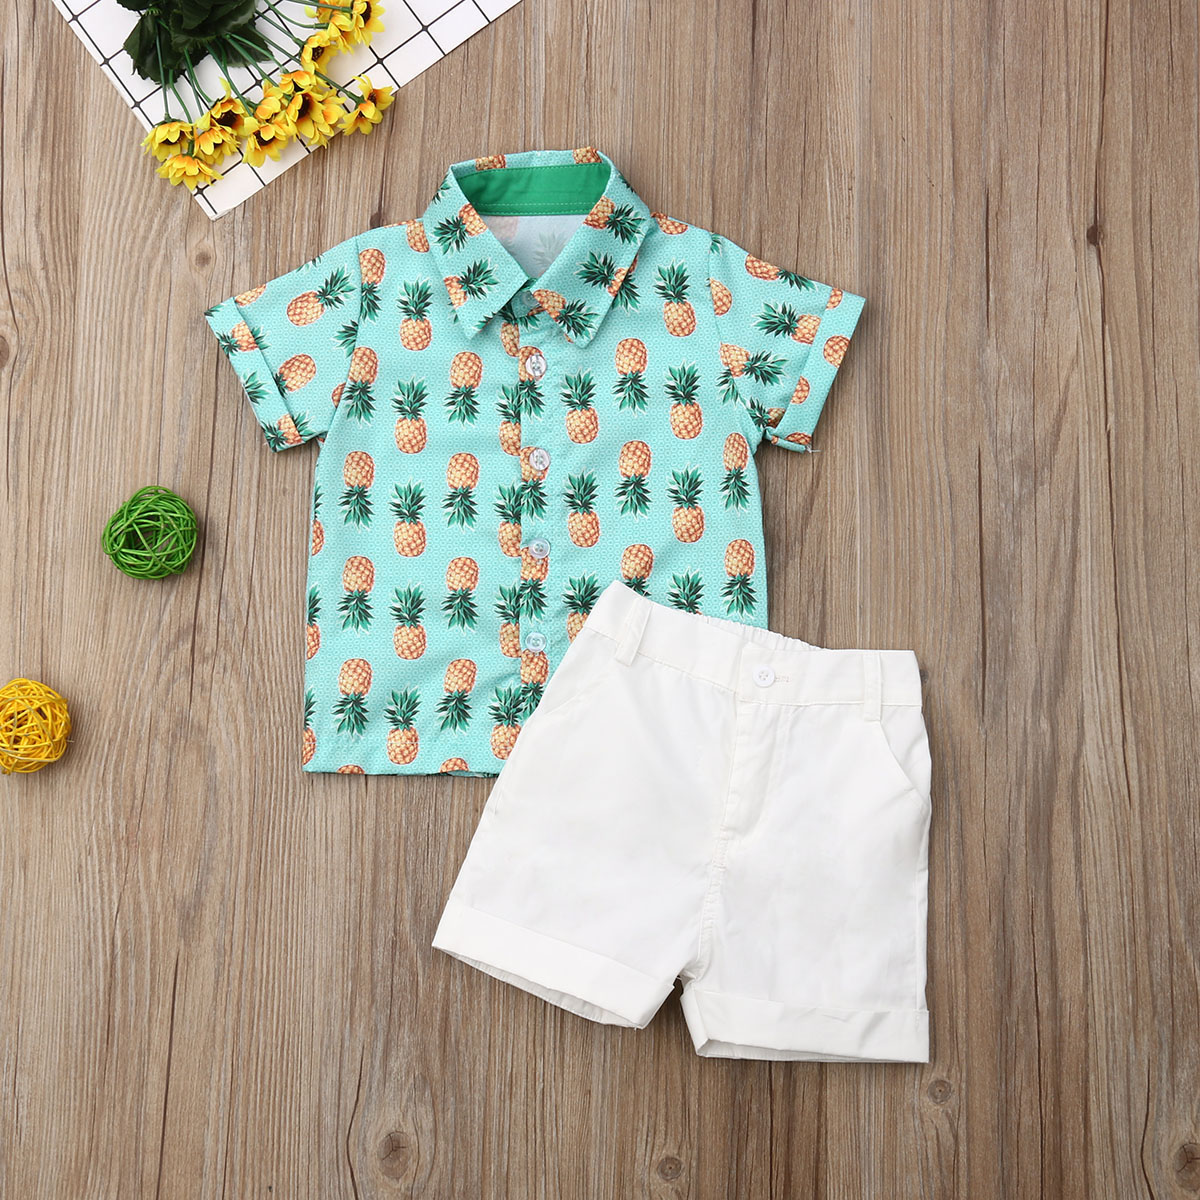 Pudcoco Summer Toddler Baby Boy Clothes 2Pcs Gentleman Pineapple Print Shirt Tops Short Pants Clothes Outfits Set Summer